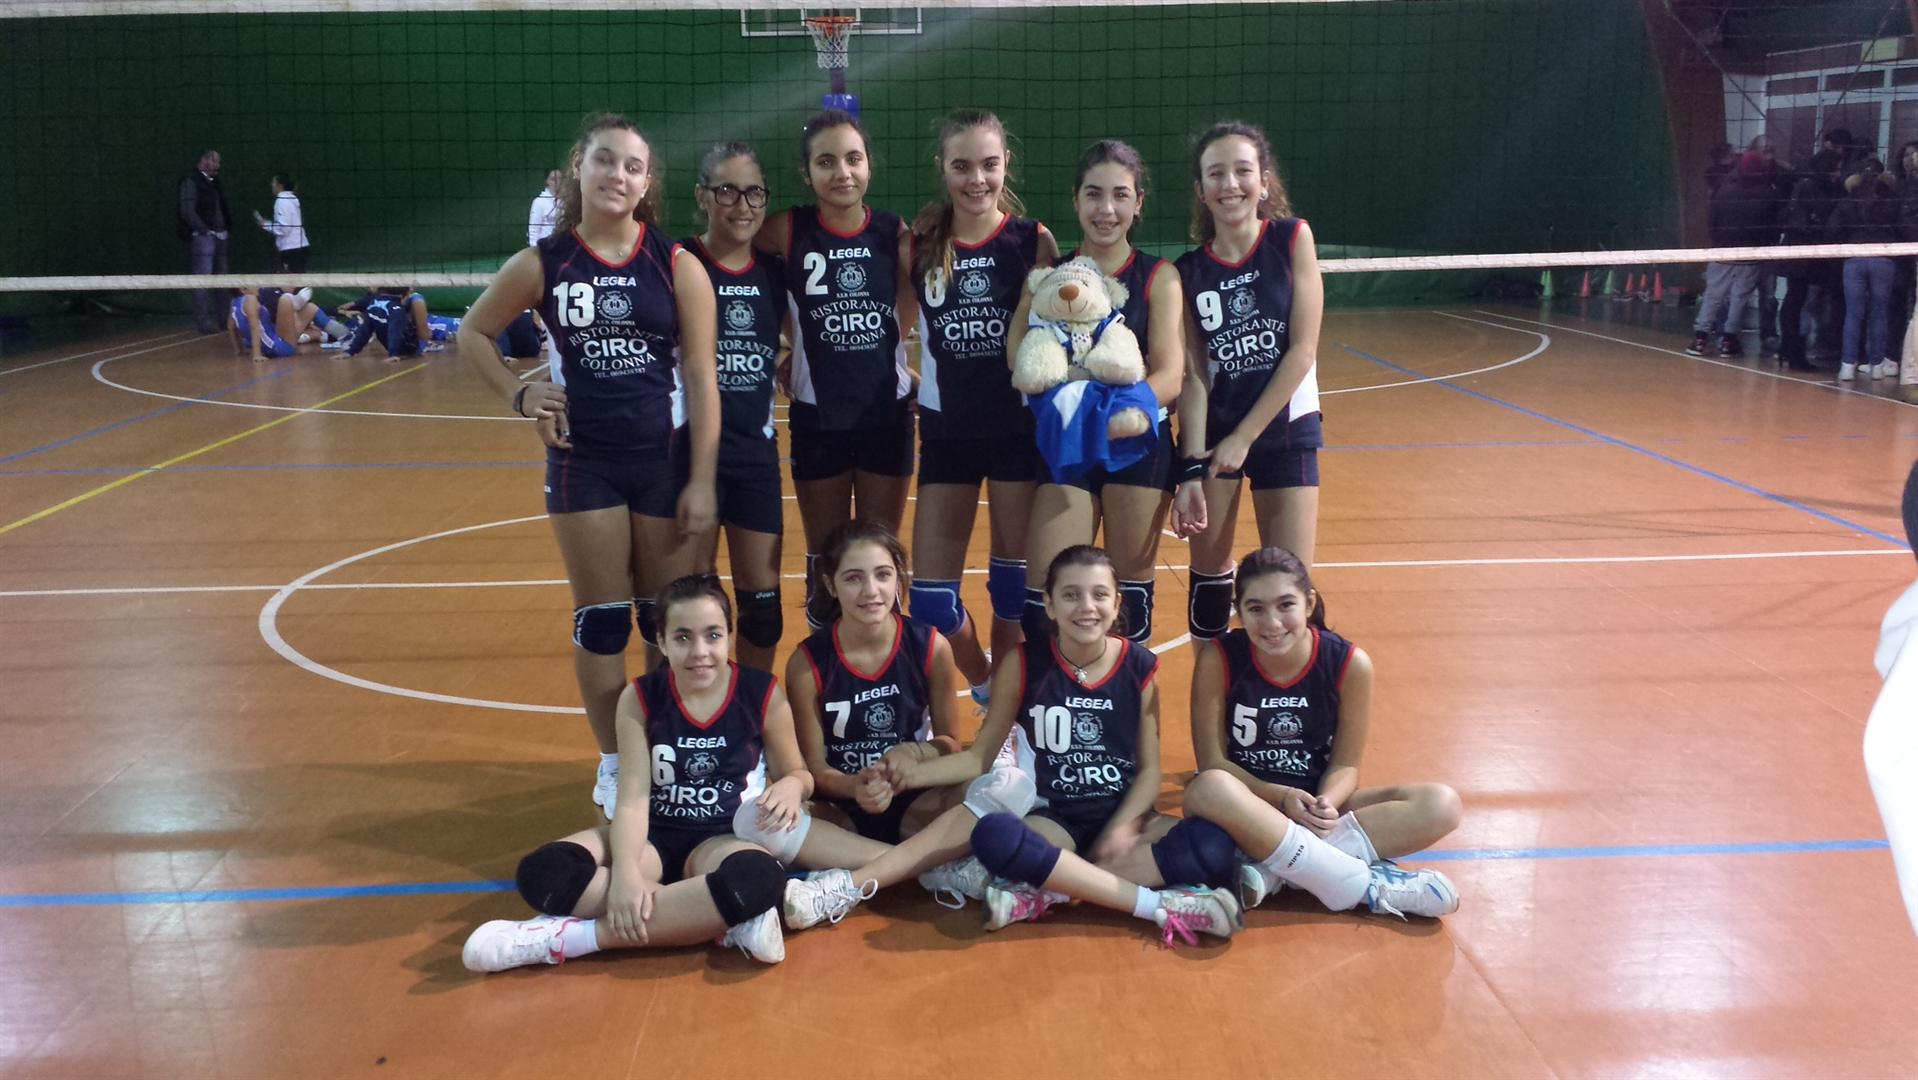 ssd colonna volley under 14 femminile stagione 2013 14